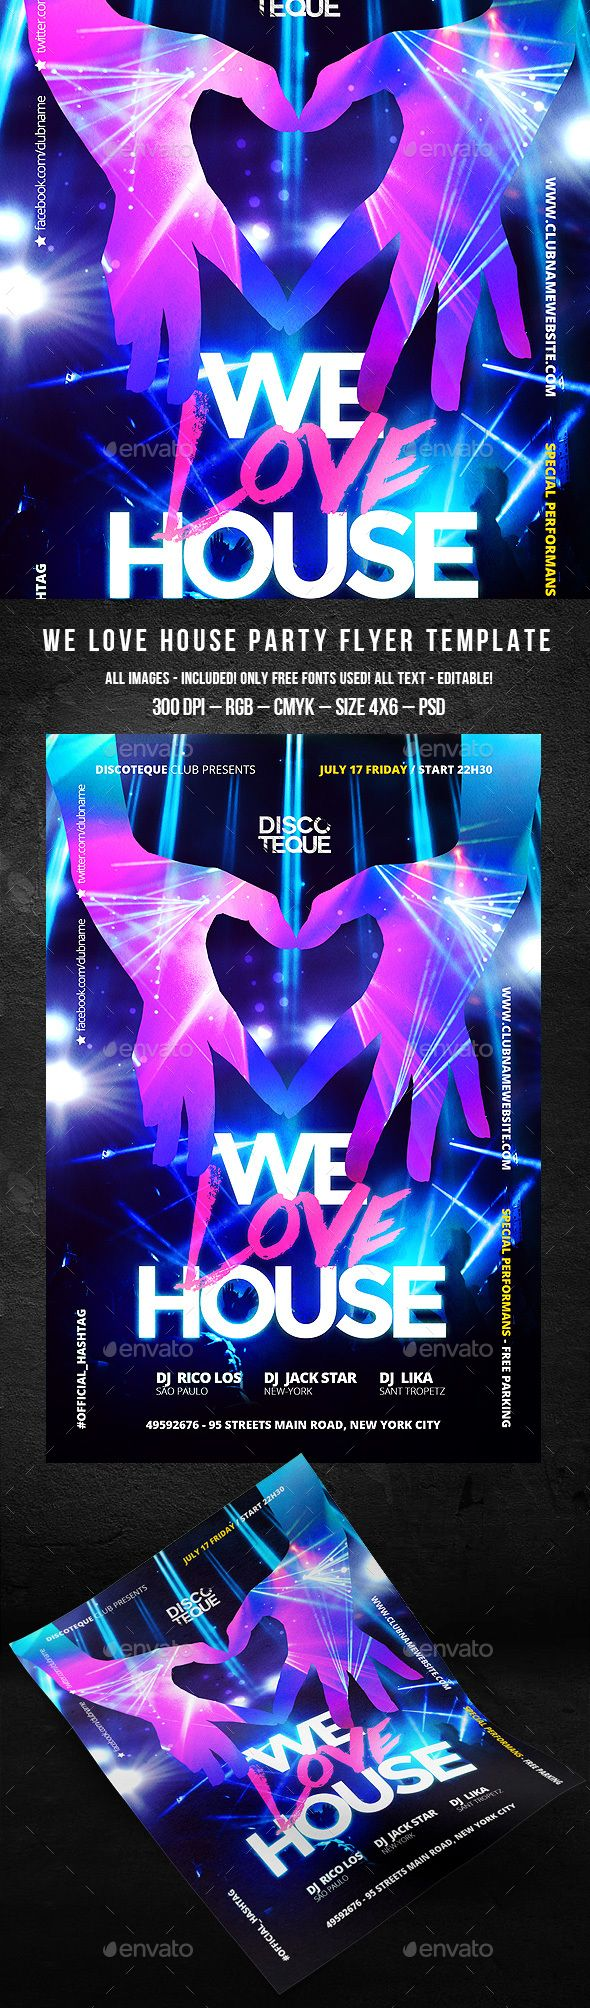 159 best images about Best Club Flyers on Pinterest